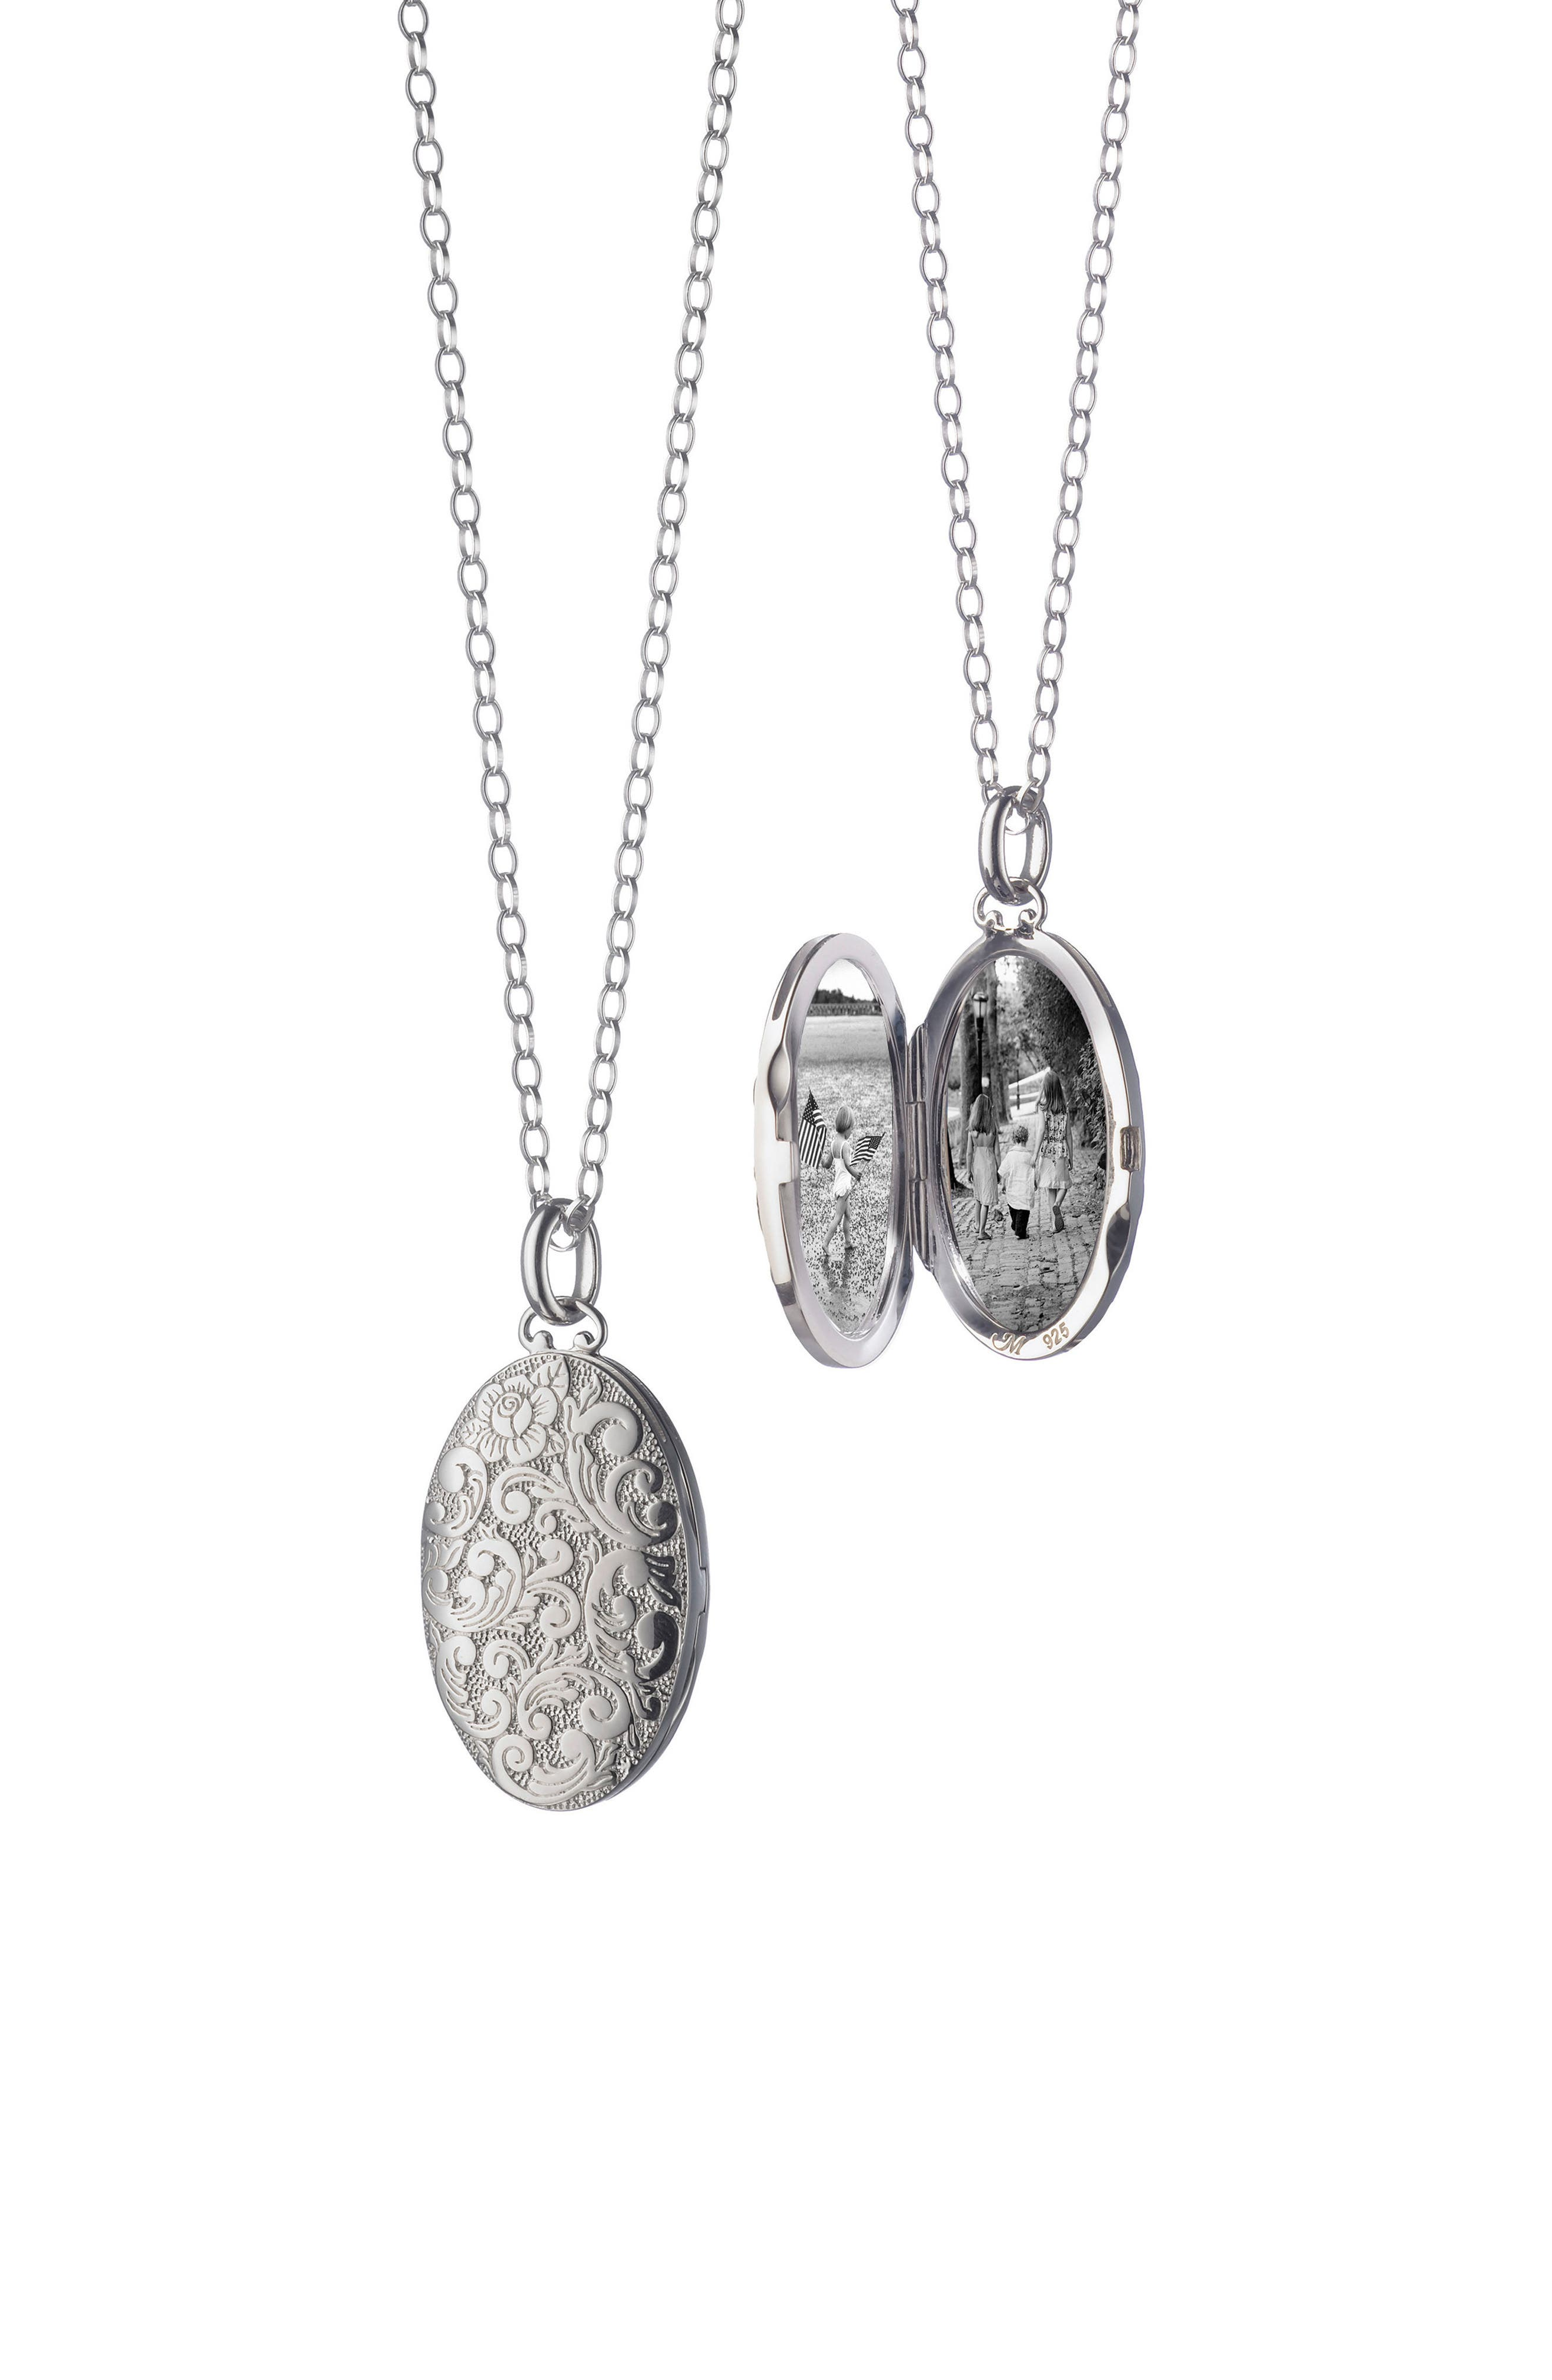 Floral Pattern Locket Necklace,                             Main thumbnail 1, color,                             STERLING SILVER